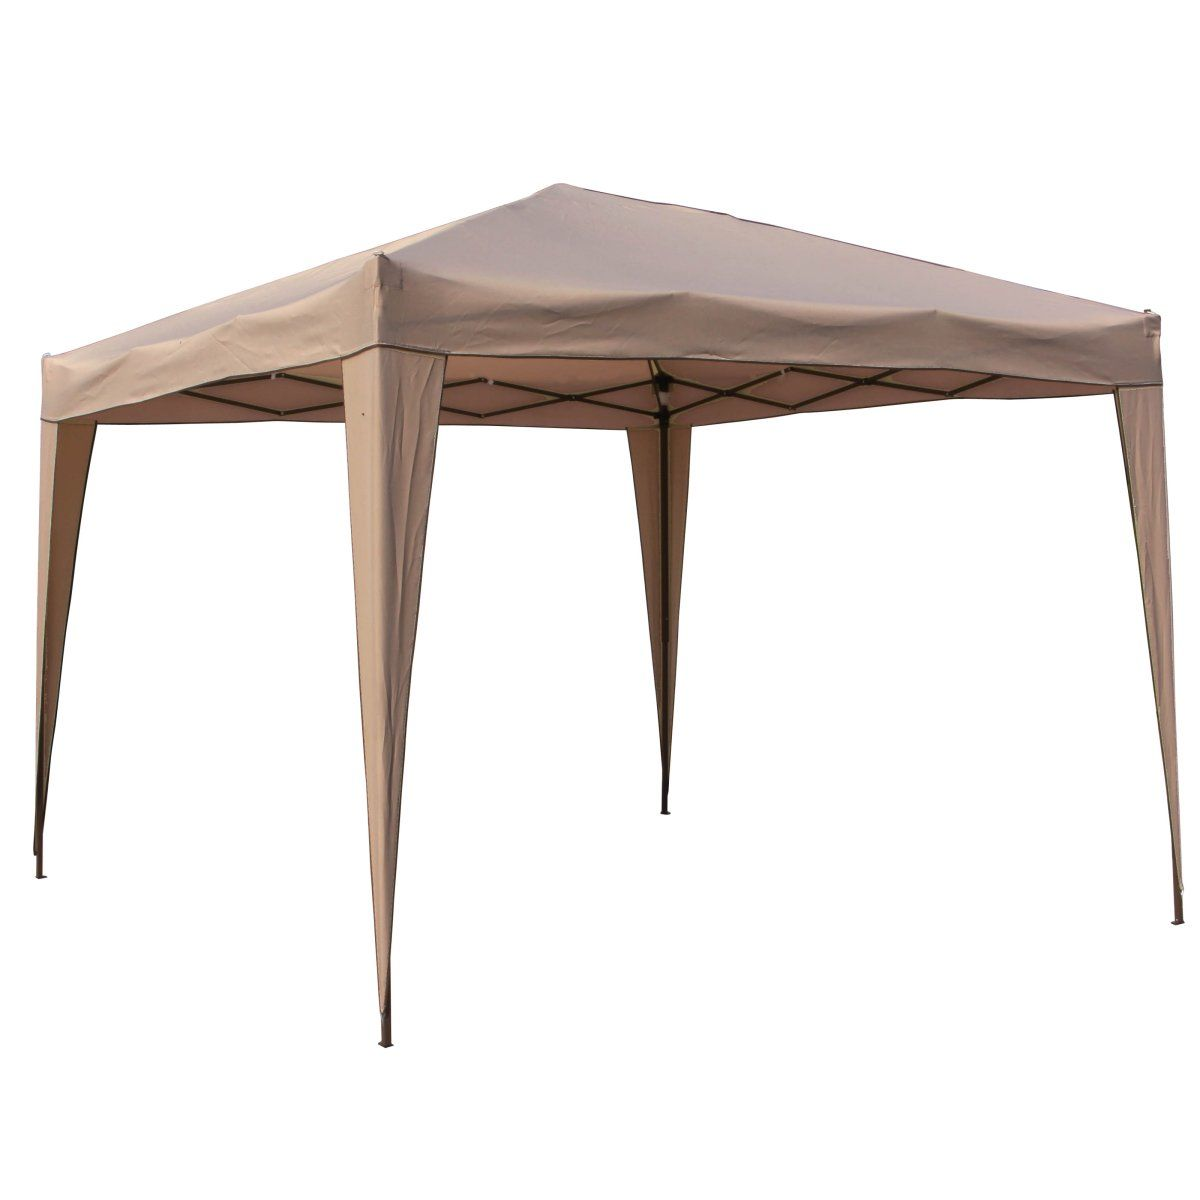 Hamilton 3 Meter Steel Folding Outdoor Gazebo with Black Carry Bag